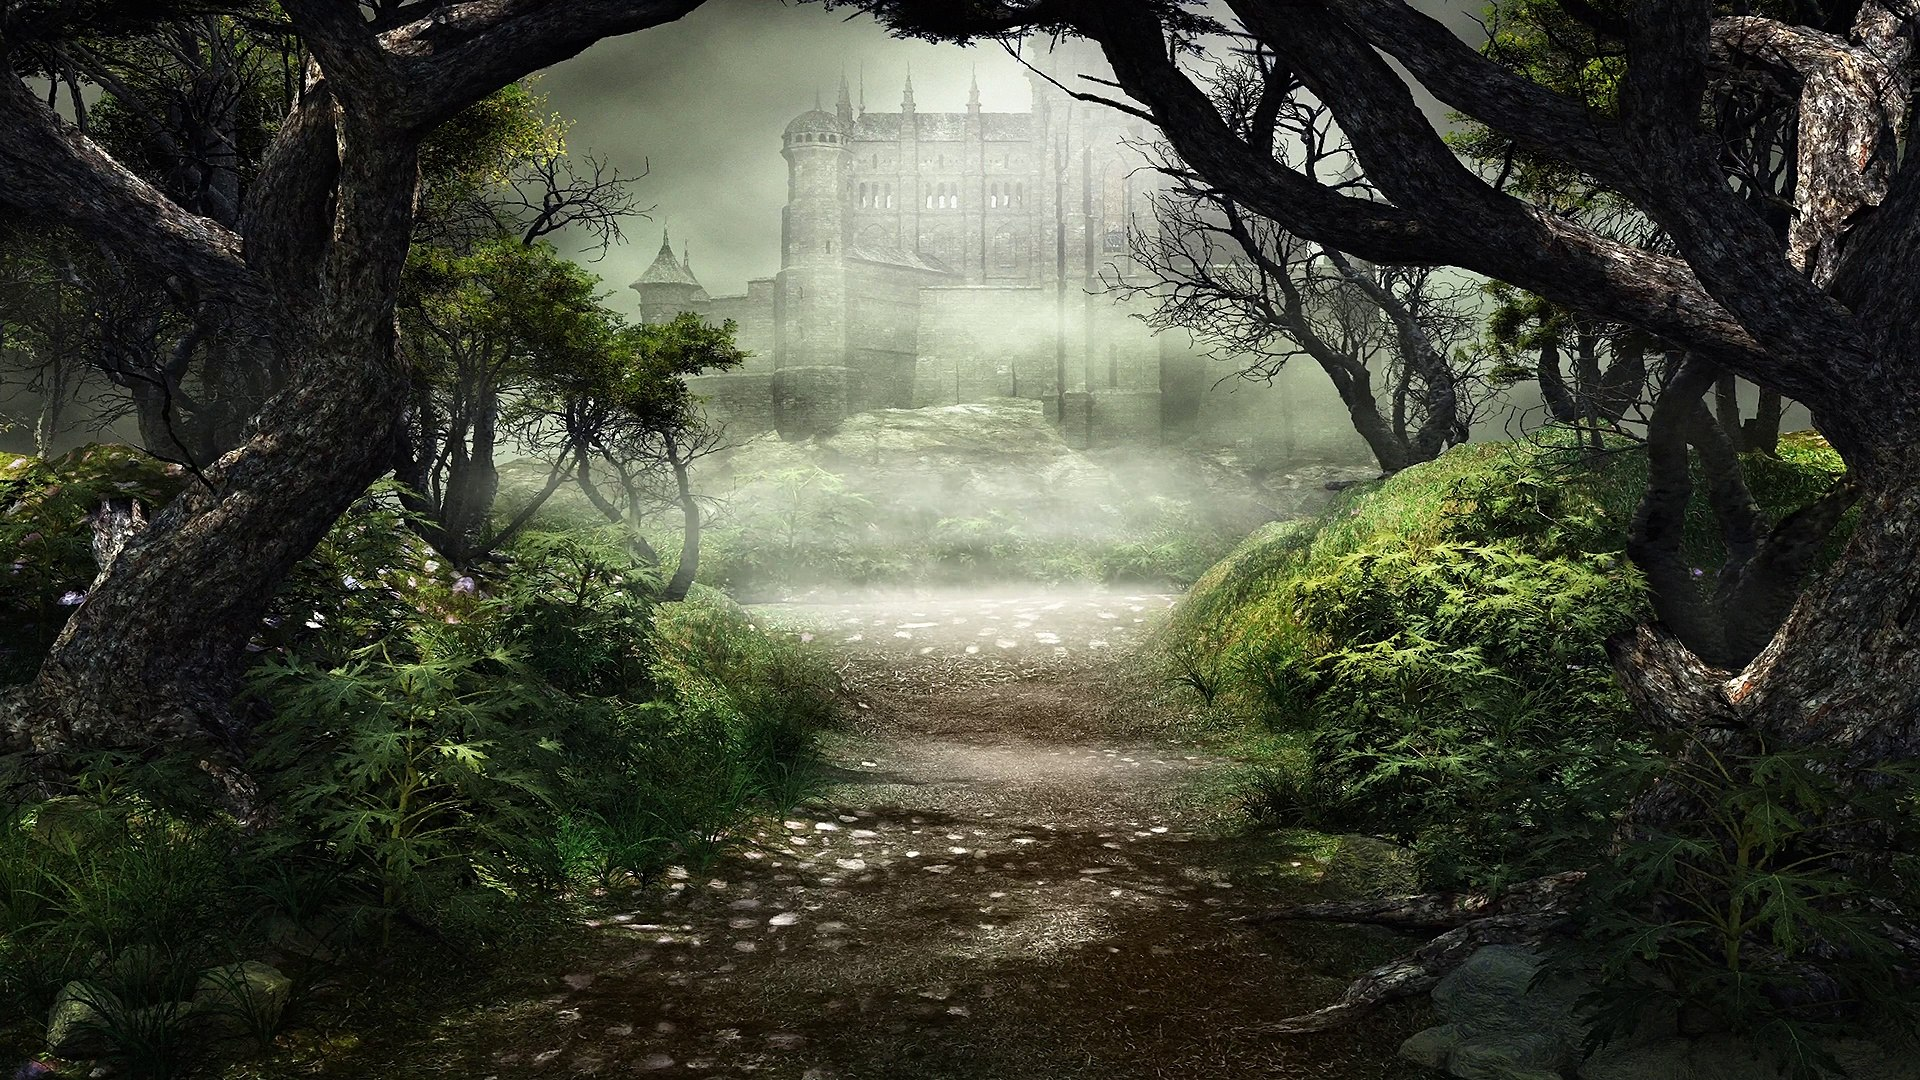 Peaceful Celtic Music: The Hiding Place - 4K - Tranquil Woodland Music, Forest Music & Fantasy M